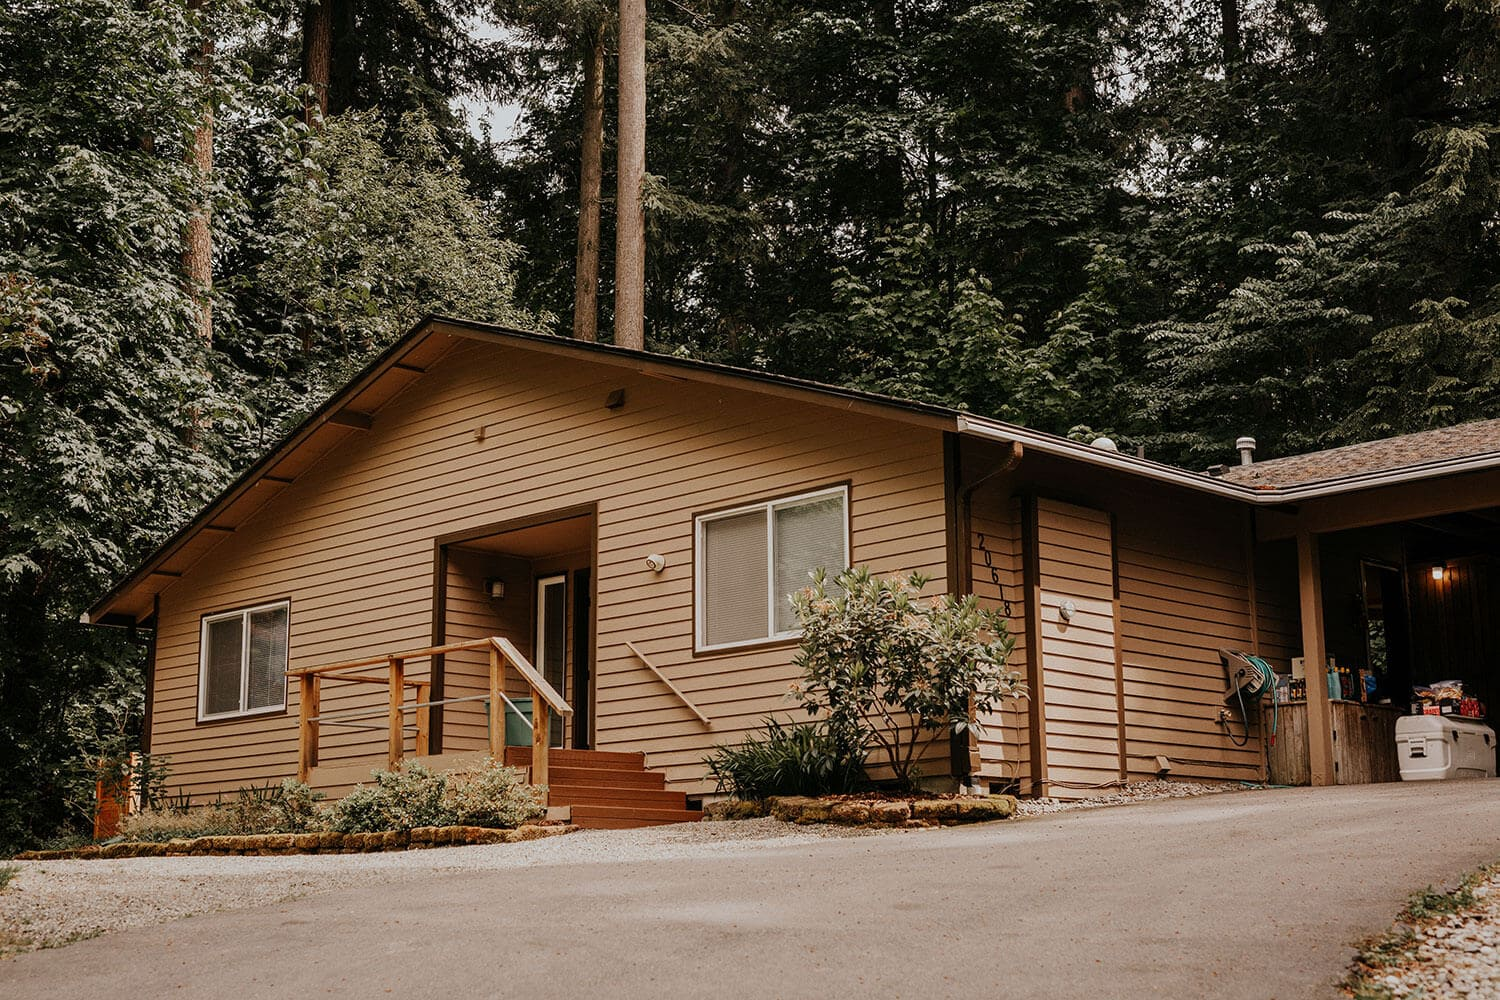 House in the woods near Seattle where bride and groom getting married at home